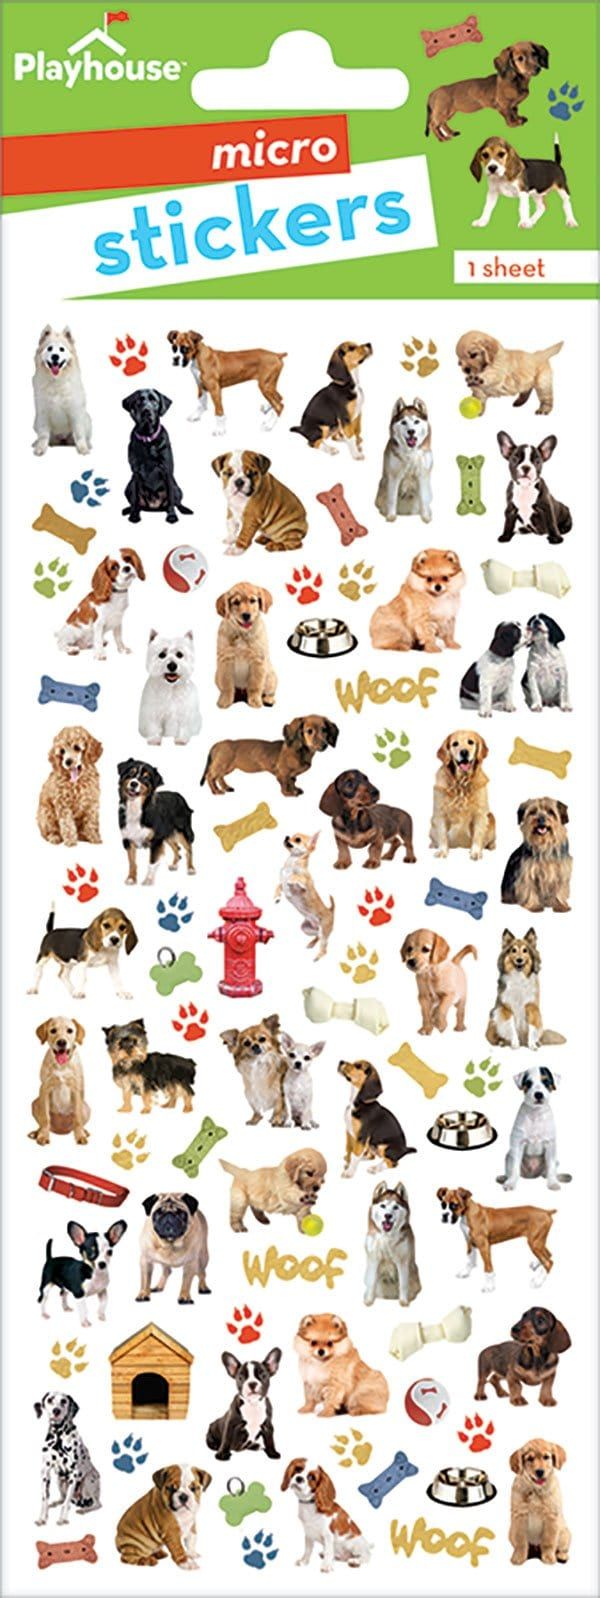 dogs micro stickers